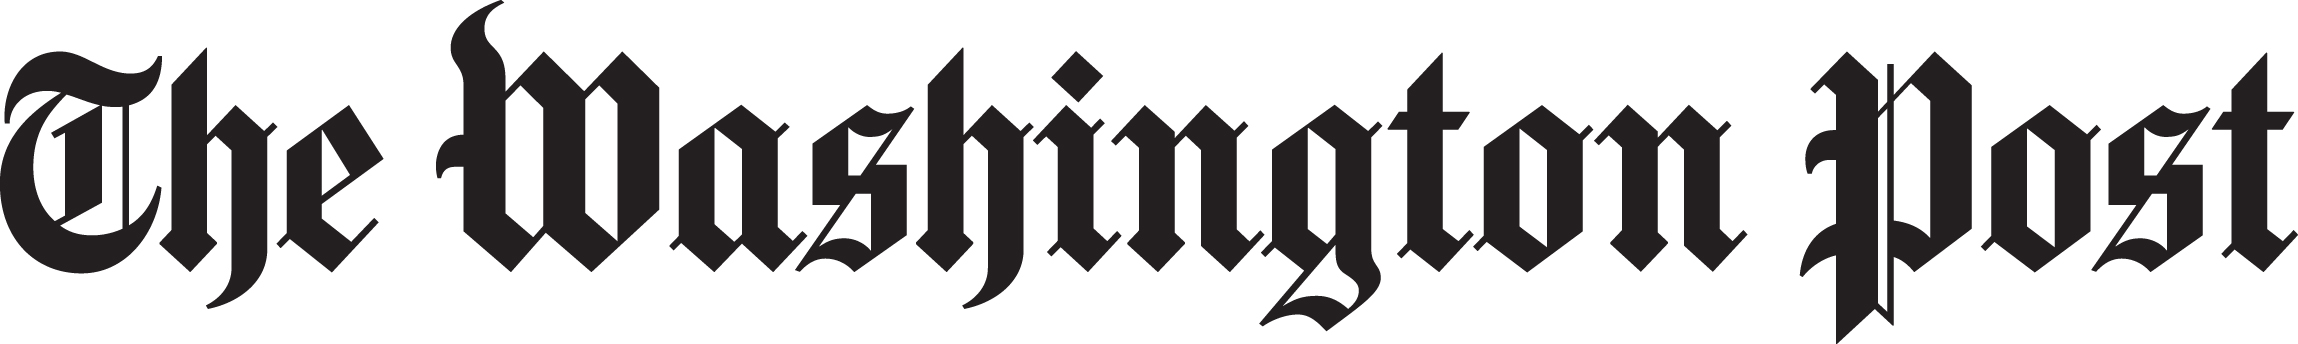 http://beltwaybargainmom.com/wp-content/uploads/2010/09/washington_post_logo.jpg